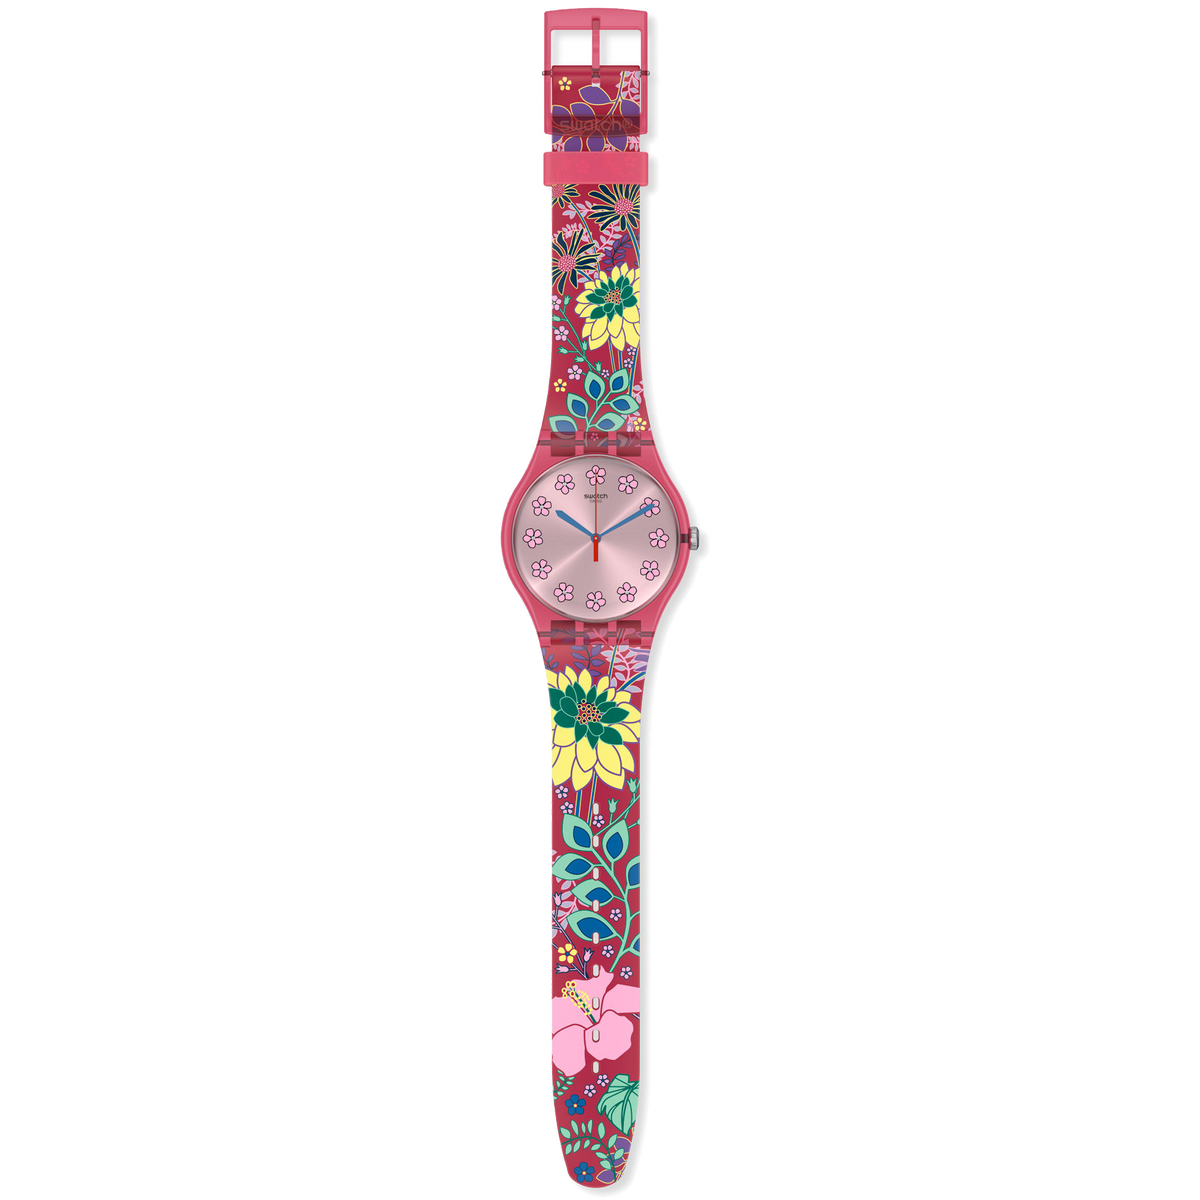 Swatch Watch 41mm - Dhabiscus